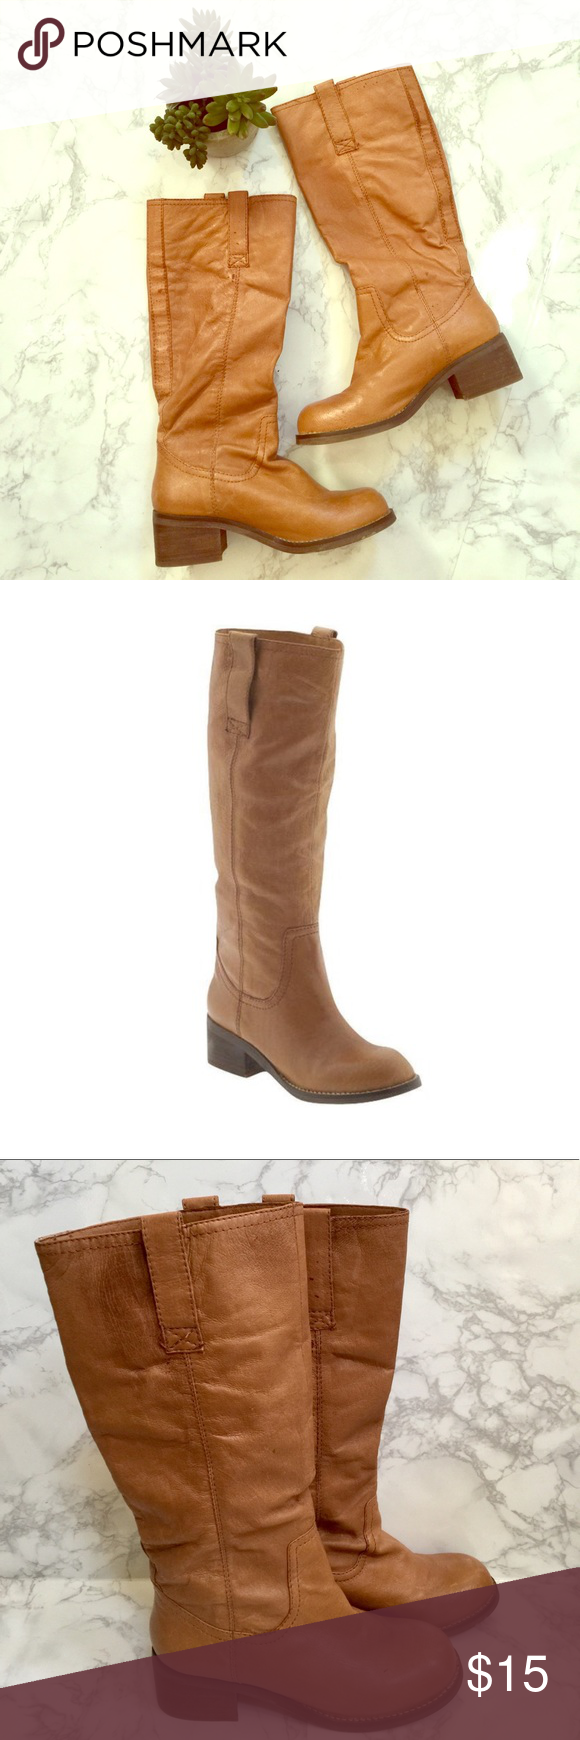 Steve Madden Foreway boots Foreway high shaft low heeled boots. Some scuffs and discoloration adding to vintage look. Steve Madden Shoes Heeled Boots